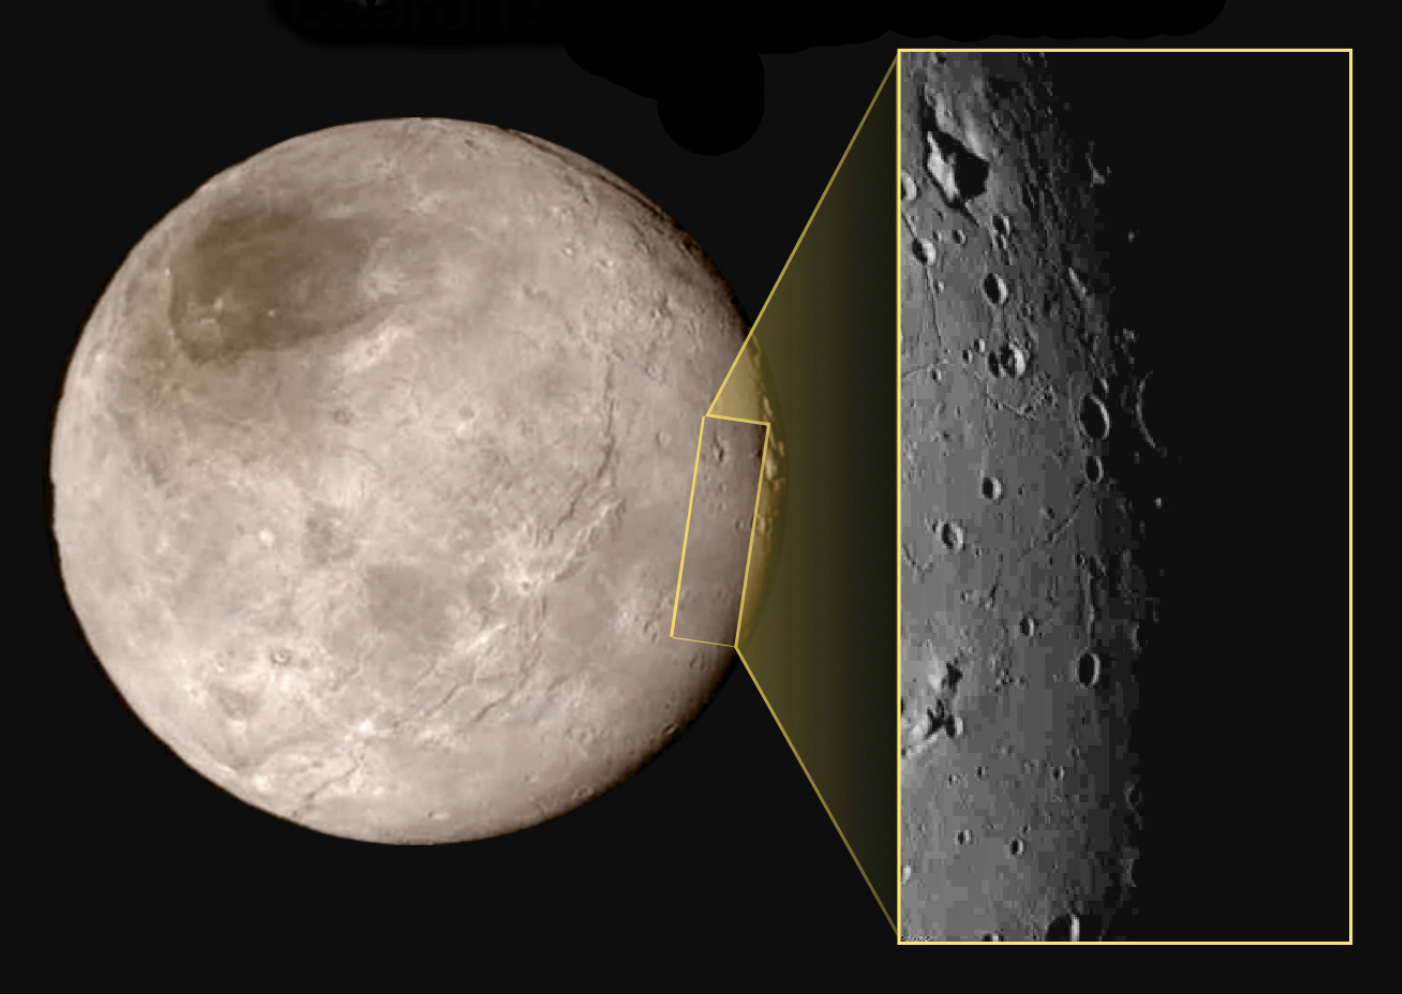 This new image of an area on Pluto's largest moon Charon has a captivating feature — a depression with a peak in the middle, shown here in the upper left corner of the inset. The image shows an area approximately 240 miles (390 kilometres) from top to bottom, including few visible craters. The image was taken at approximately 10:30 UTC (11:30am BST) on 14 July 2015, about 1.5 hours before closest approach to Pluto, from a range of 49,000 miles (79,000 kilometres). Image credits: NASA-JHUAPL-SwRI.